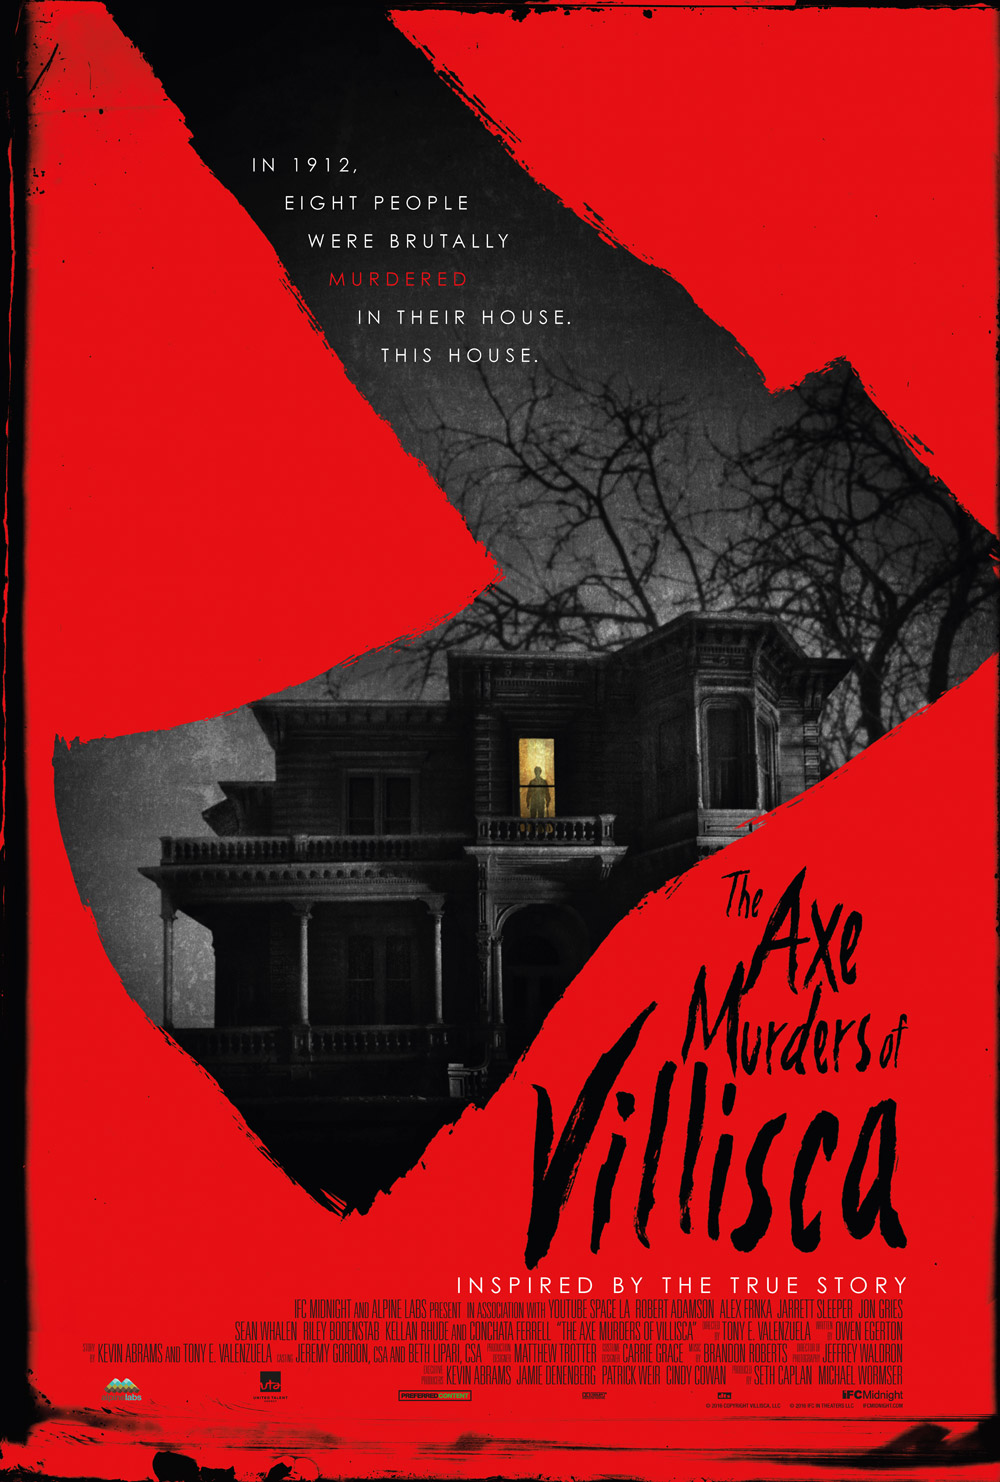 trailer-for-the-horror-thriller-the-axe-murders-of-villisca-which-is-inspired-by-a-true-story